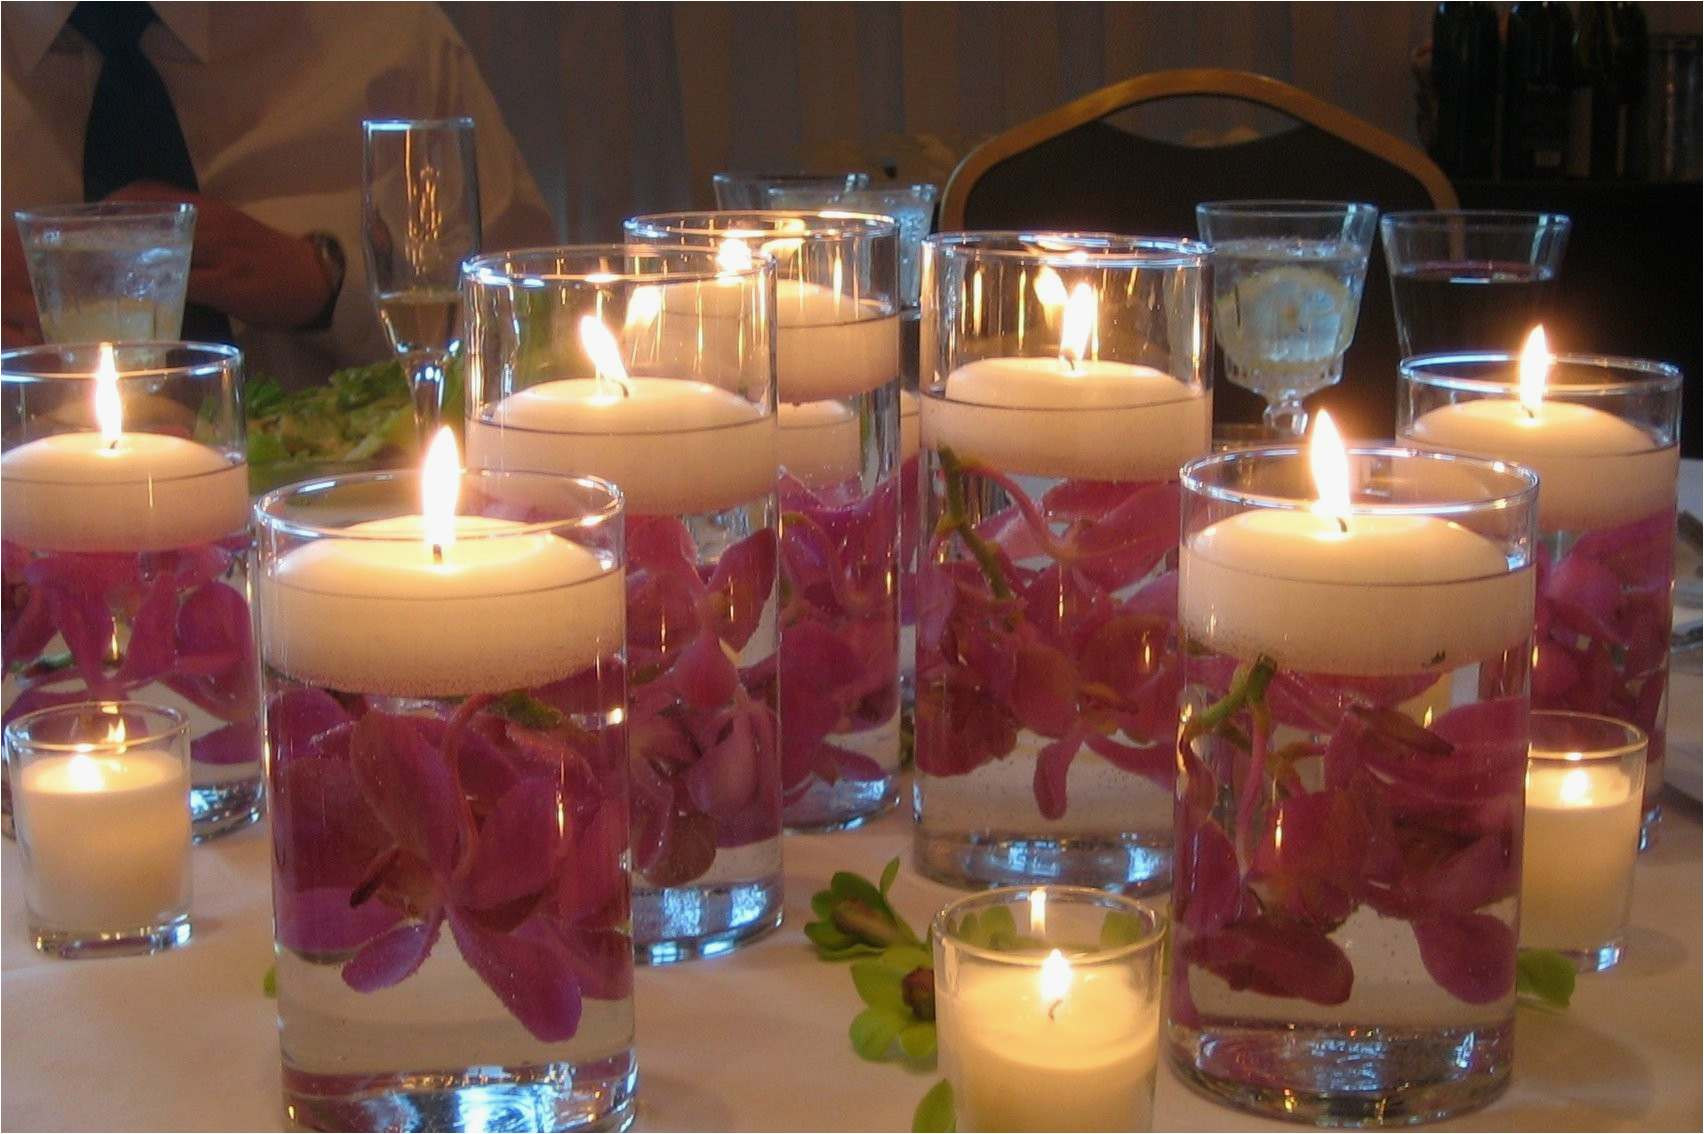 inexpensive cylinder vases of cheap wedding centerpiece ideas minimalist wedding centerpieces intended for cheap wedding centerpiece ideas top design decorating ideas for wedding a bud new dsc h vases